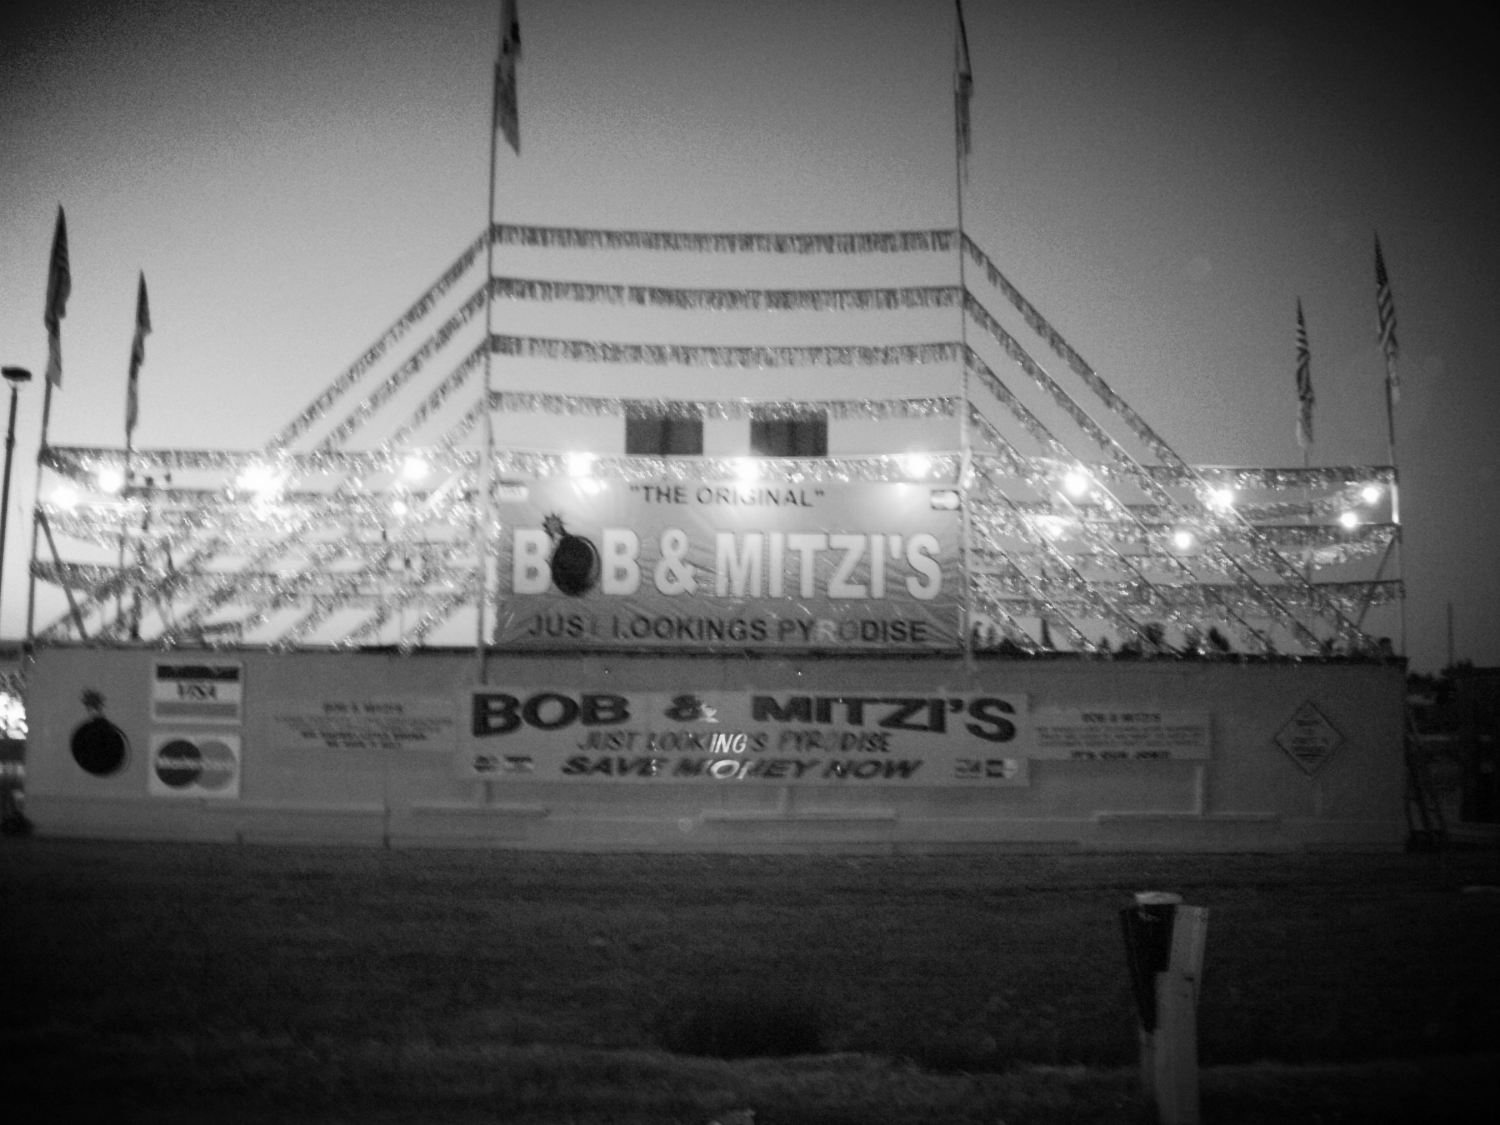 Back side view of Bob & Mitzi's